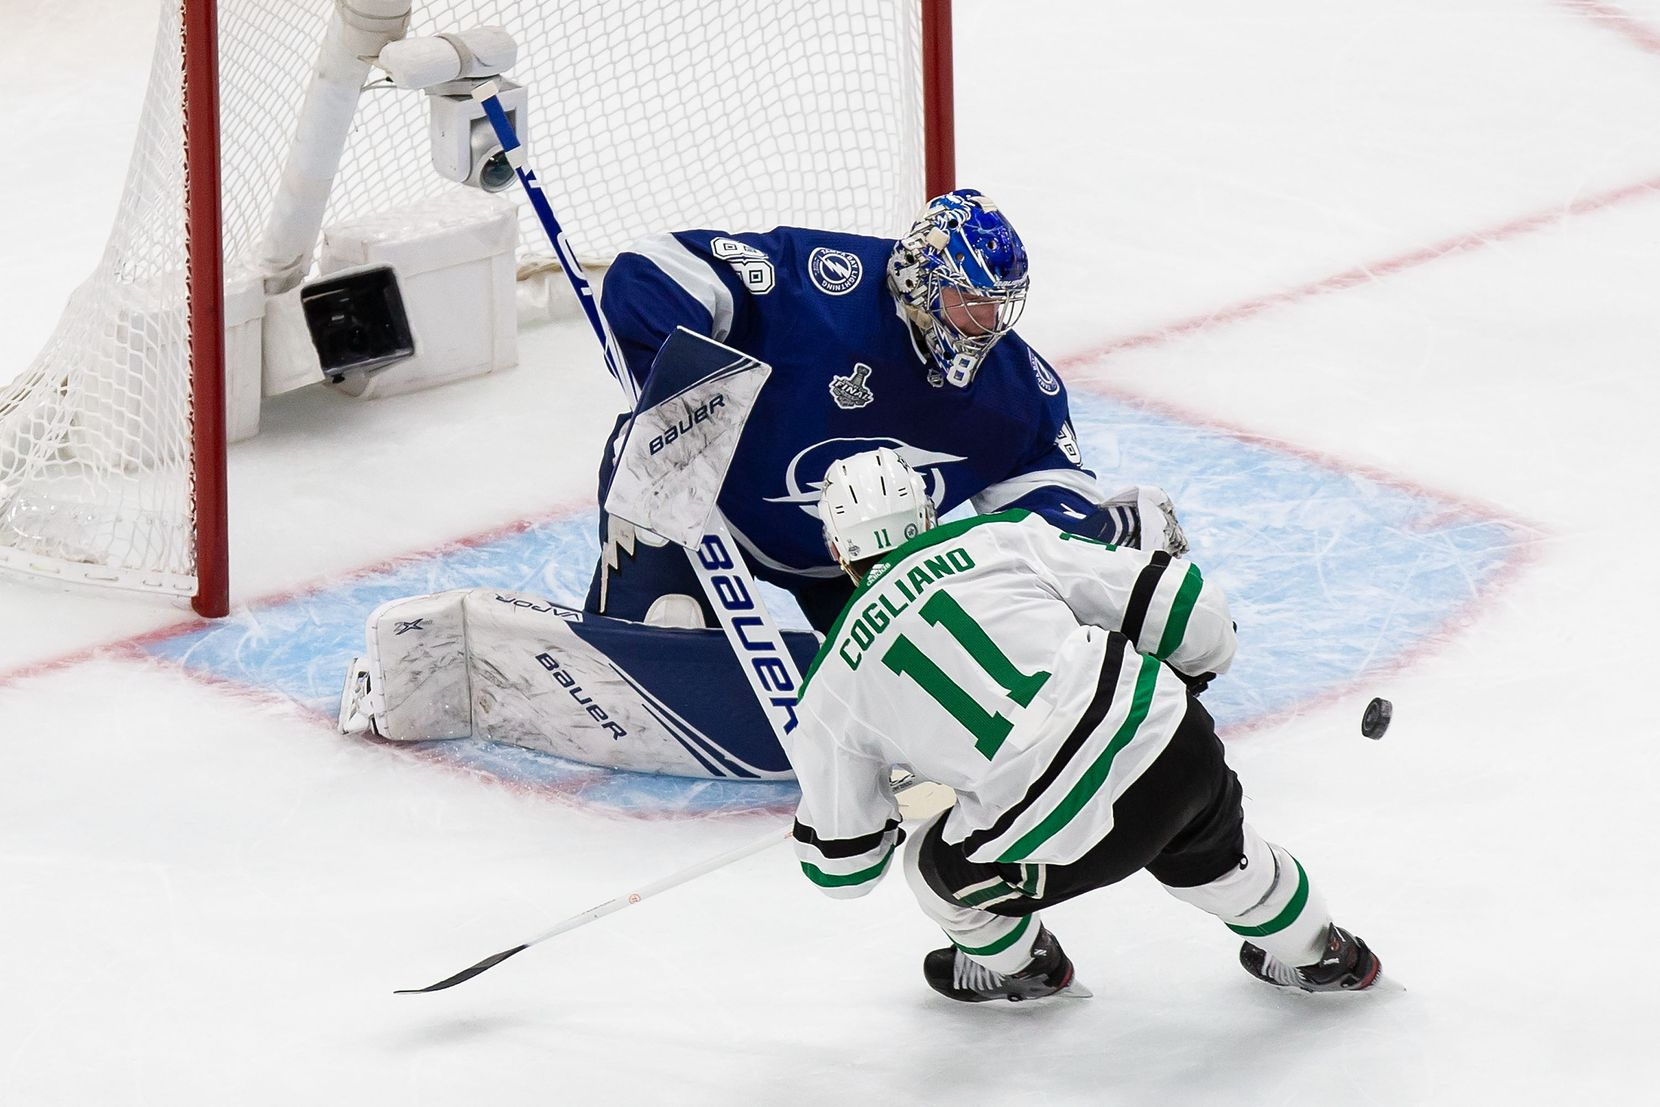 Andrew Cogliano (11) of the Dallas Stars takes a shot on goaltender Andrei Vasilevskiy (88) of the Tampa Bay Lightning during Game Two of the Stanley Cup Final at Rogers Place in Edmonton, Alberta, Canada on Monday, September 21, 2020. (Codie McLachlan/Special Contributor)